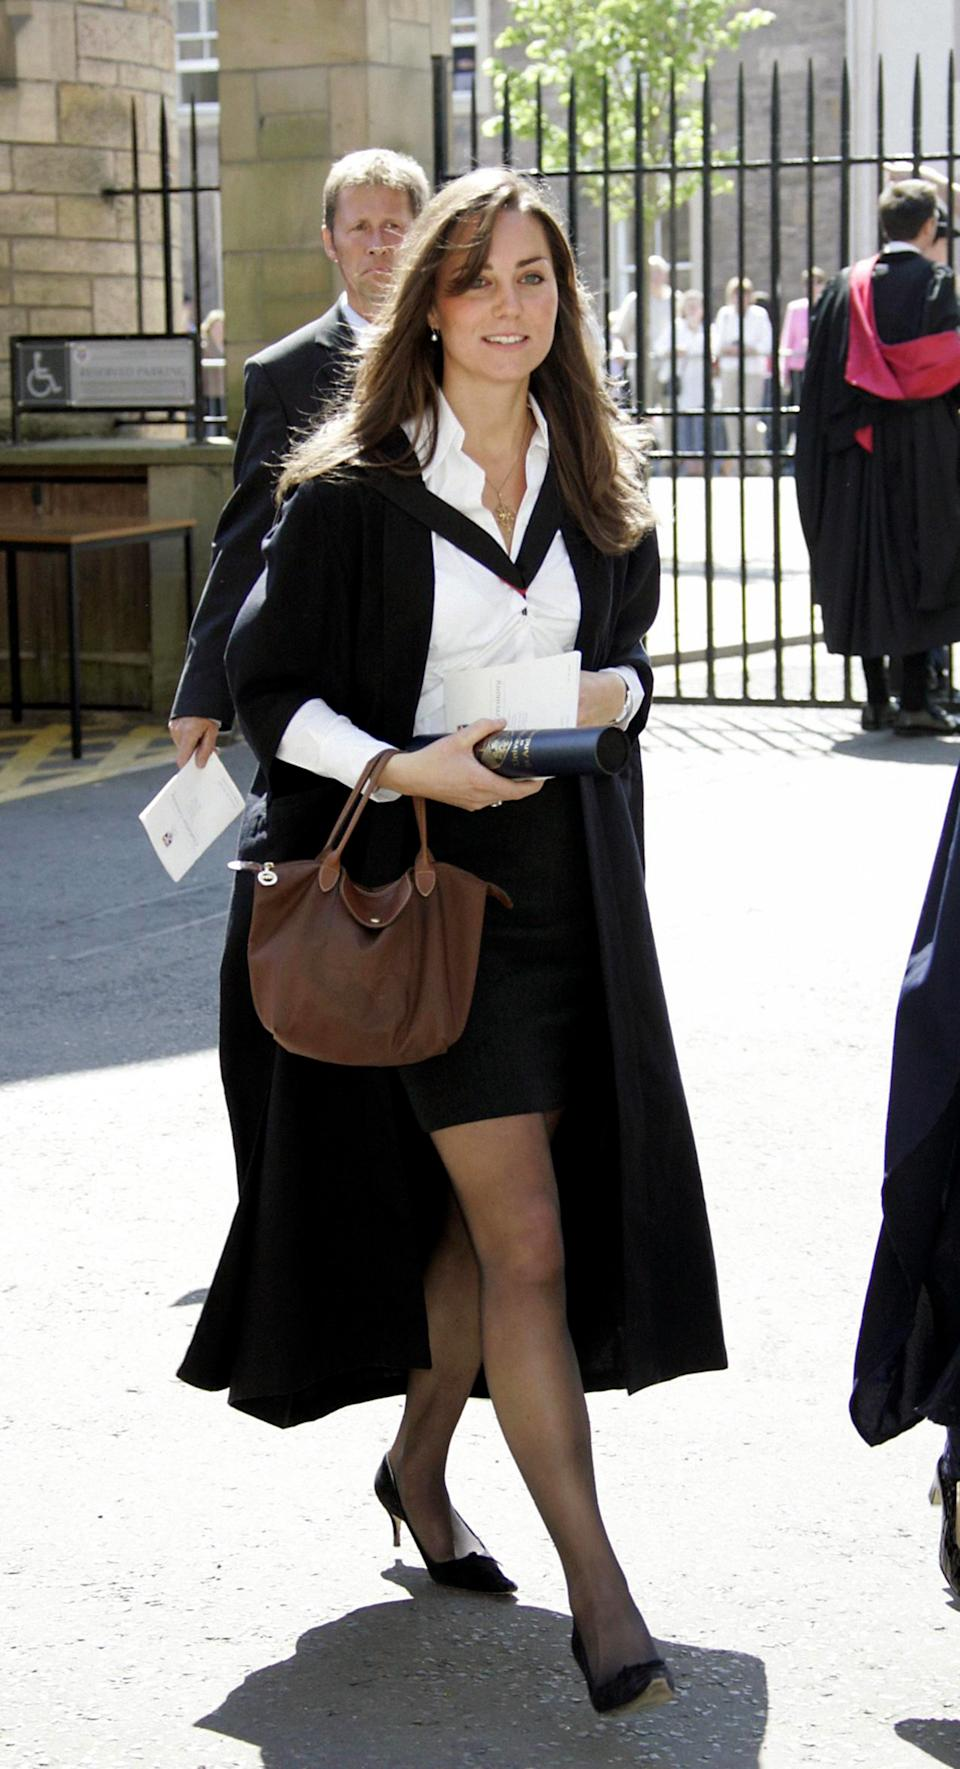 <p>Then-Kate Middleton, then-girlfriend of Prince William, during their graduation ceremony. Kate graduated in Art History and has pursued her love of photography through her royal work. (PA Images)</p>